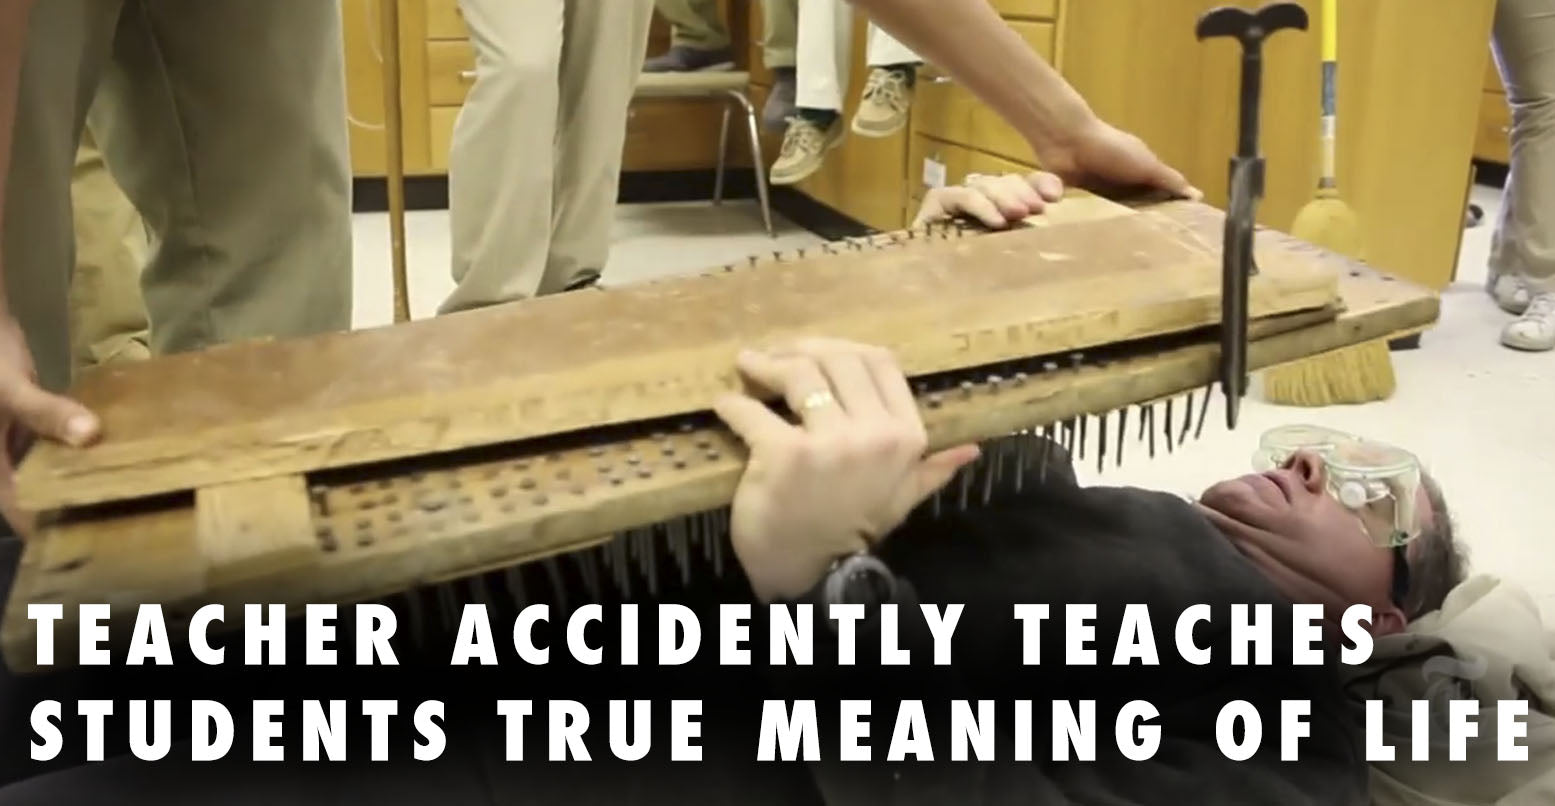 Physics Teacher Accidently Teaches Students The True Meaning Of Life - Jeff Wright